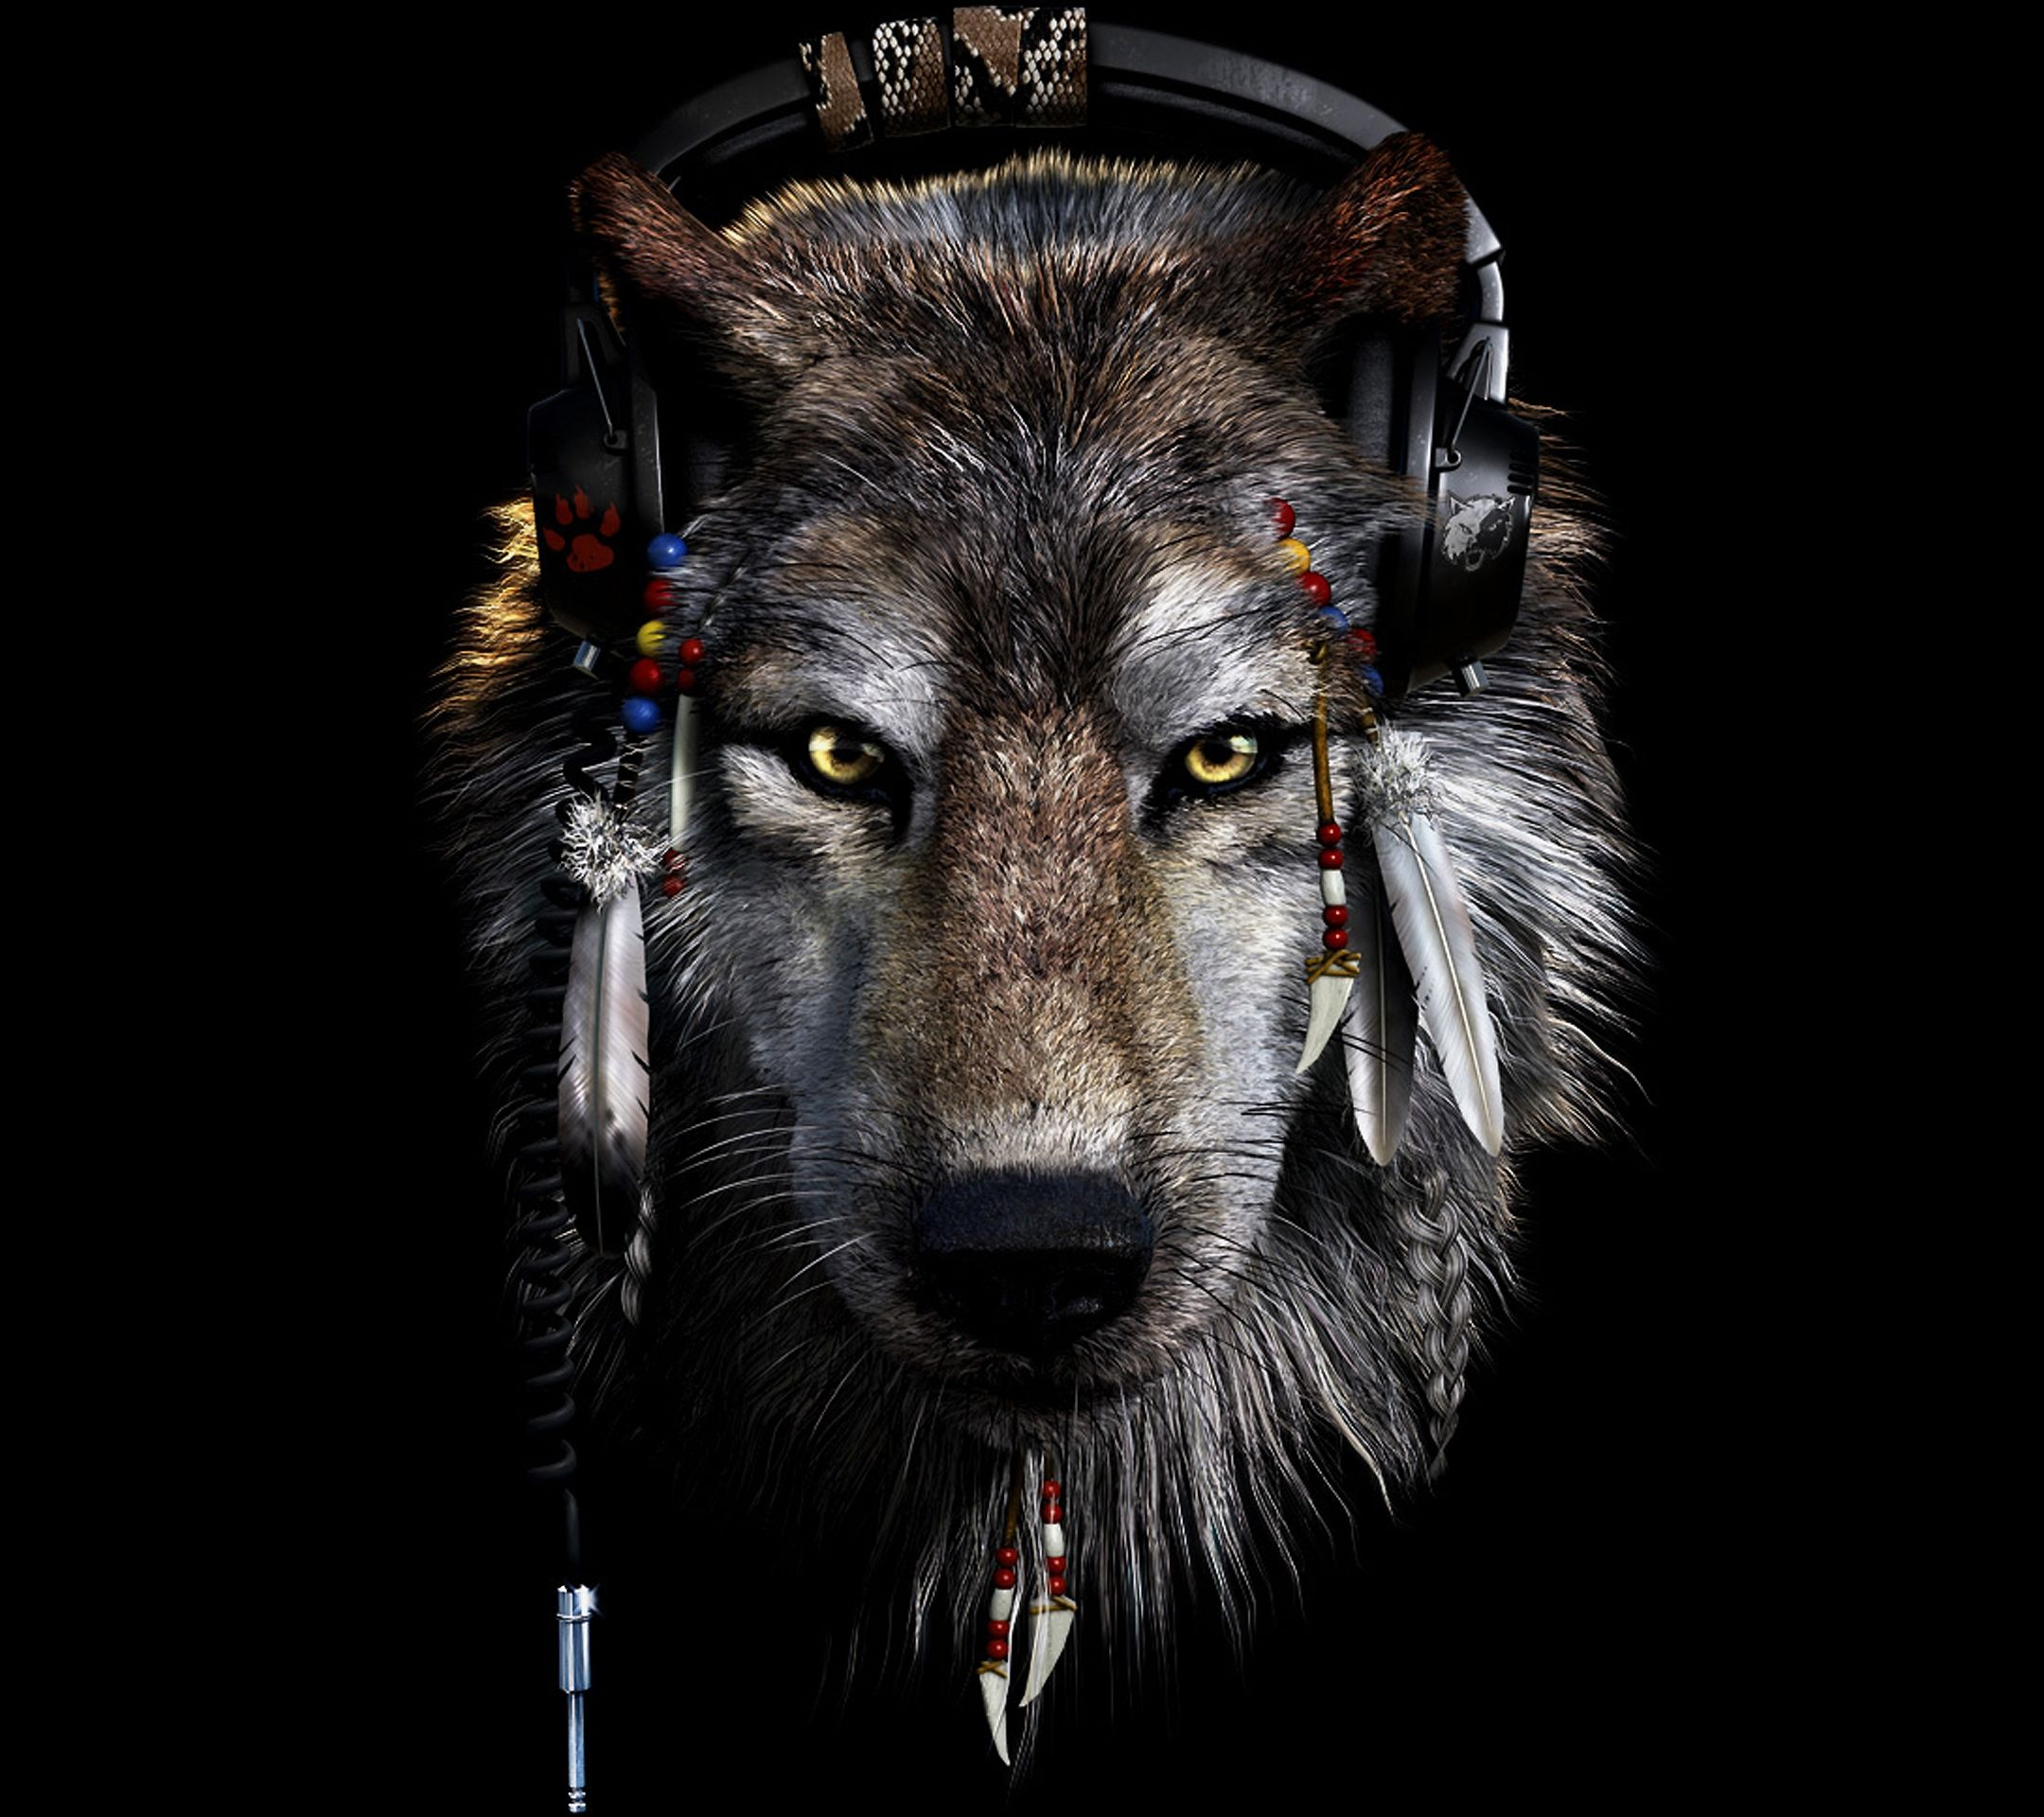 Hd wallpaper wolf - Dark Wolf Wallpapers Wallpaper